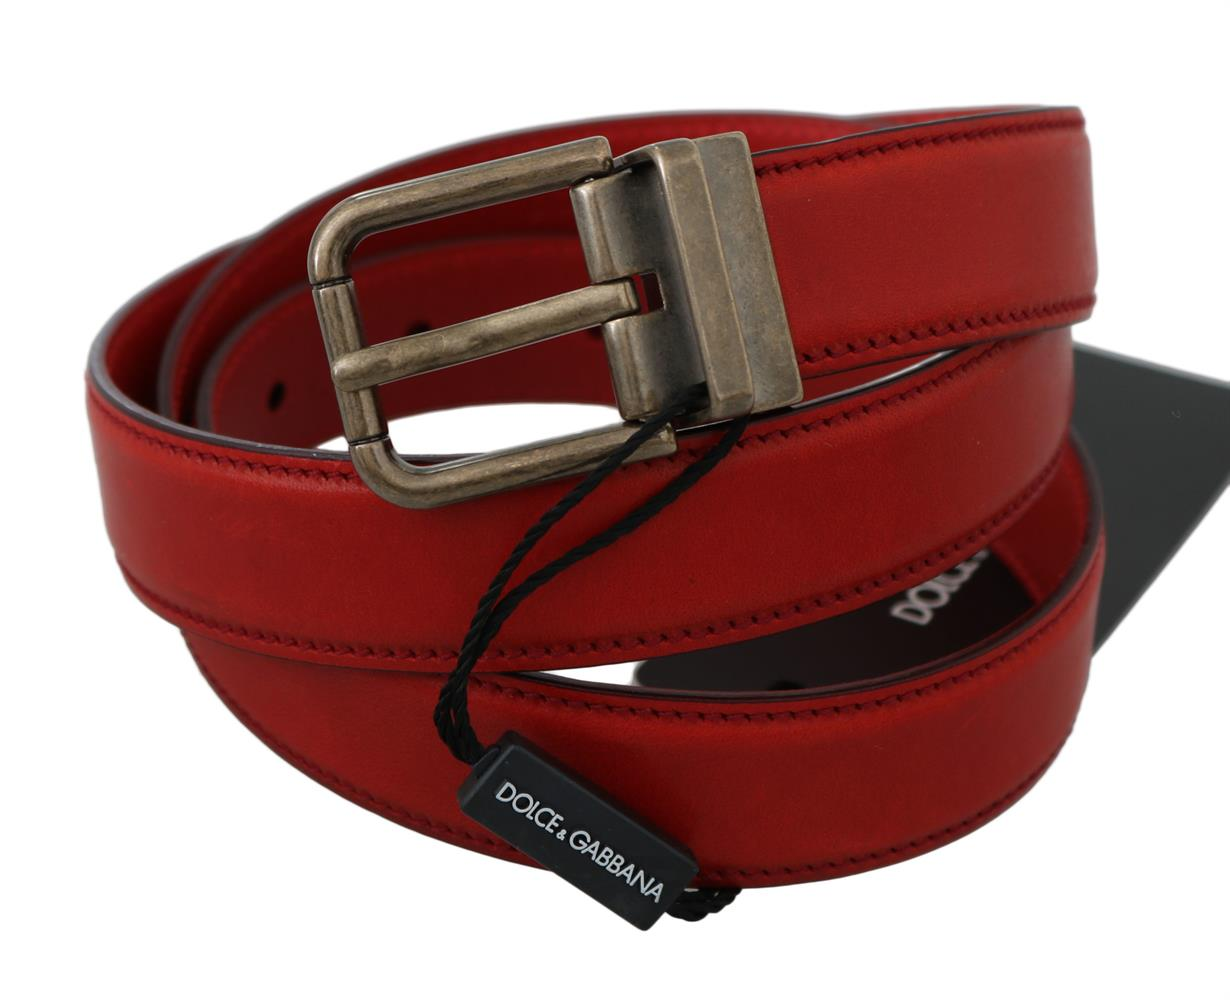 Dolce & Gabbana Red Bordeaux Leather Gray Metal Buckle Belt 90 cm / 36 Inches